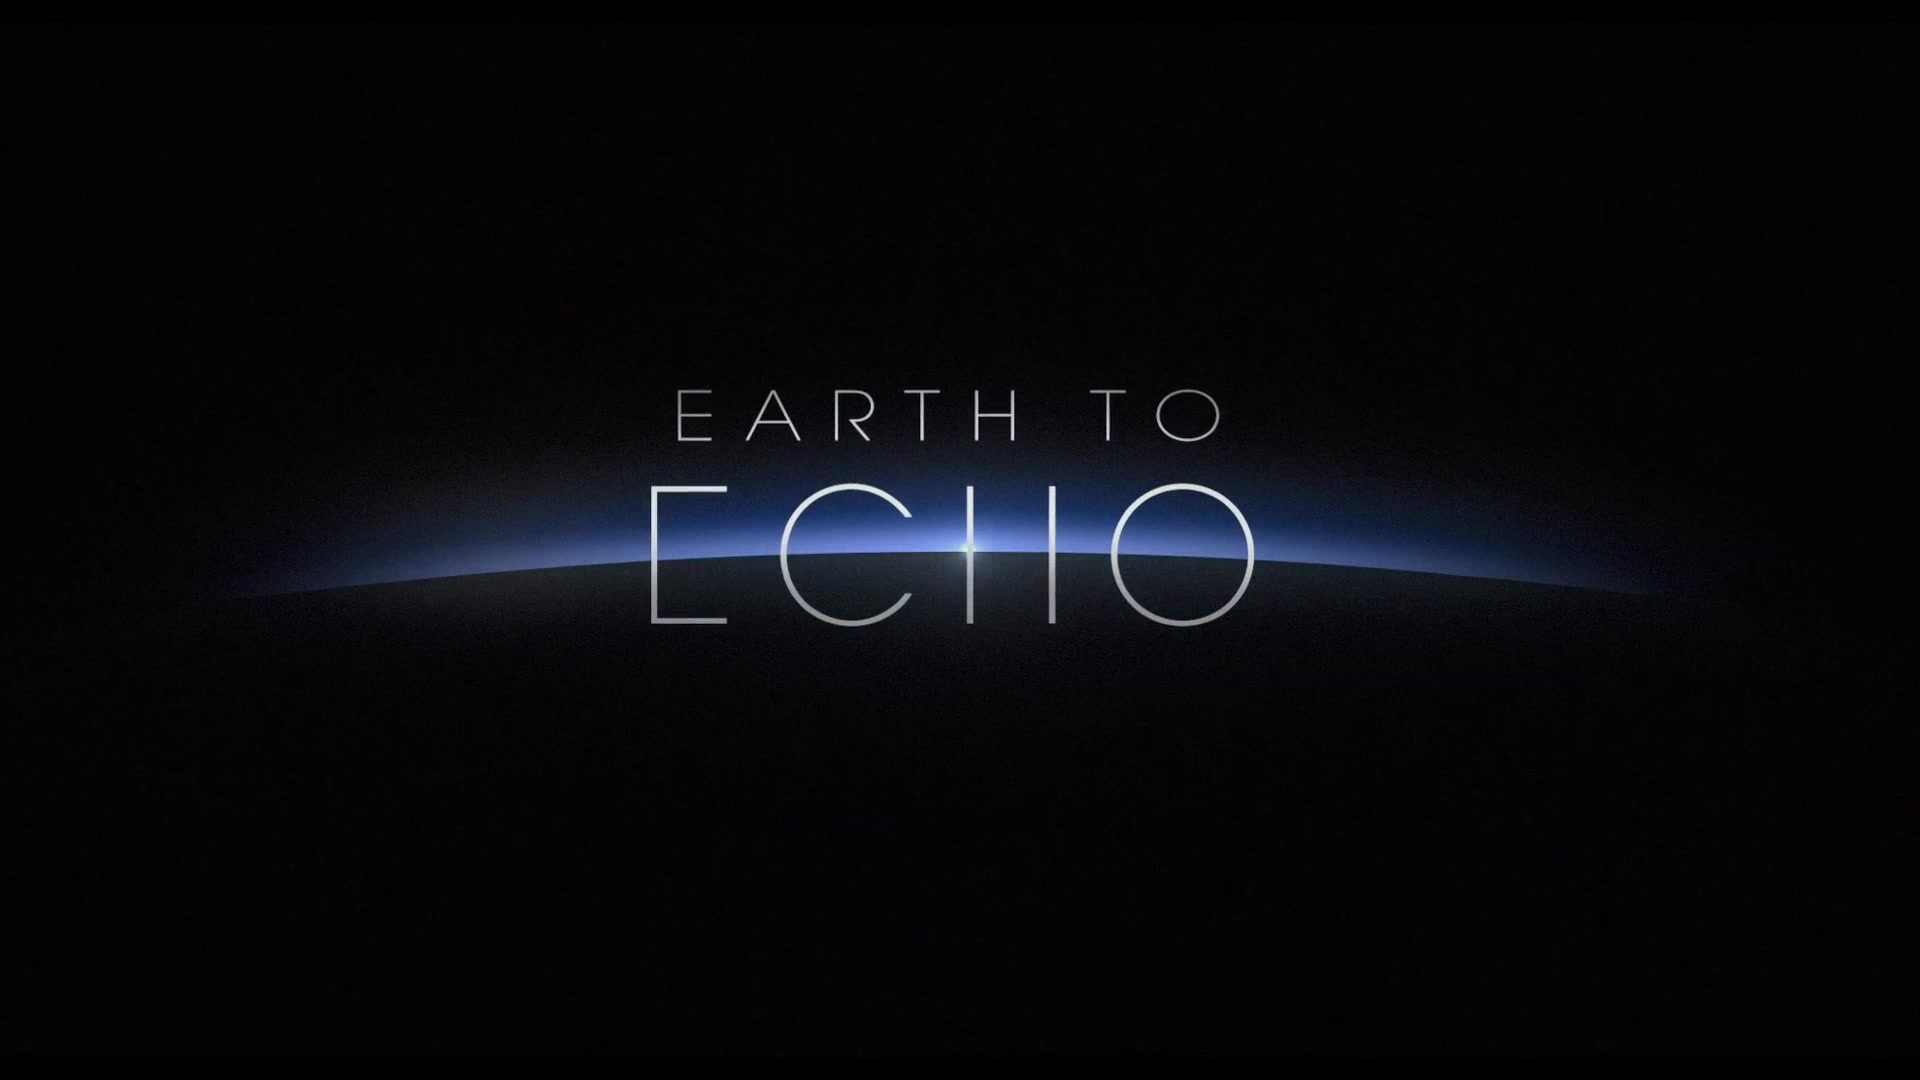 earth to echo wallpaper 33573